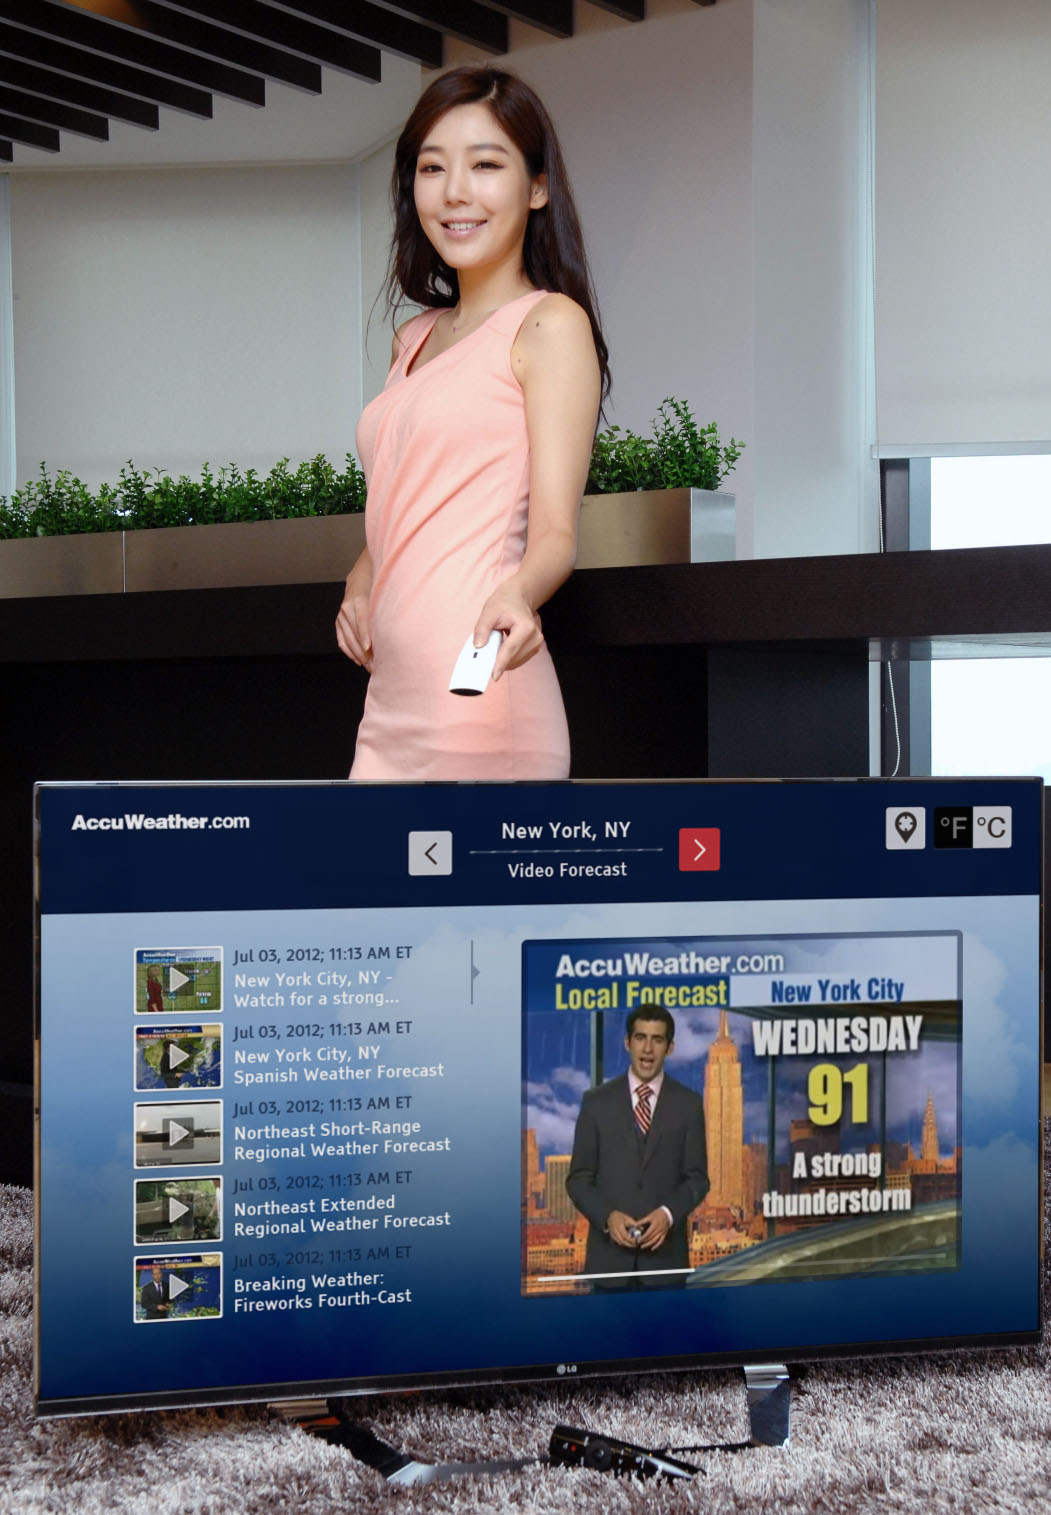 A model controlling an LG Smart TV as it displays a weather forecast channel